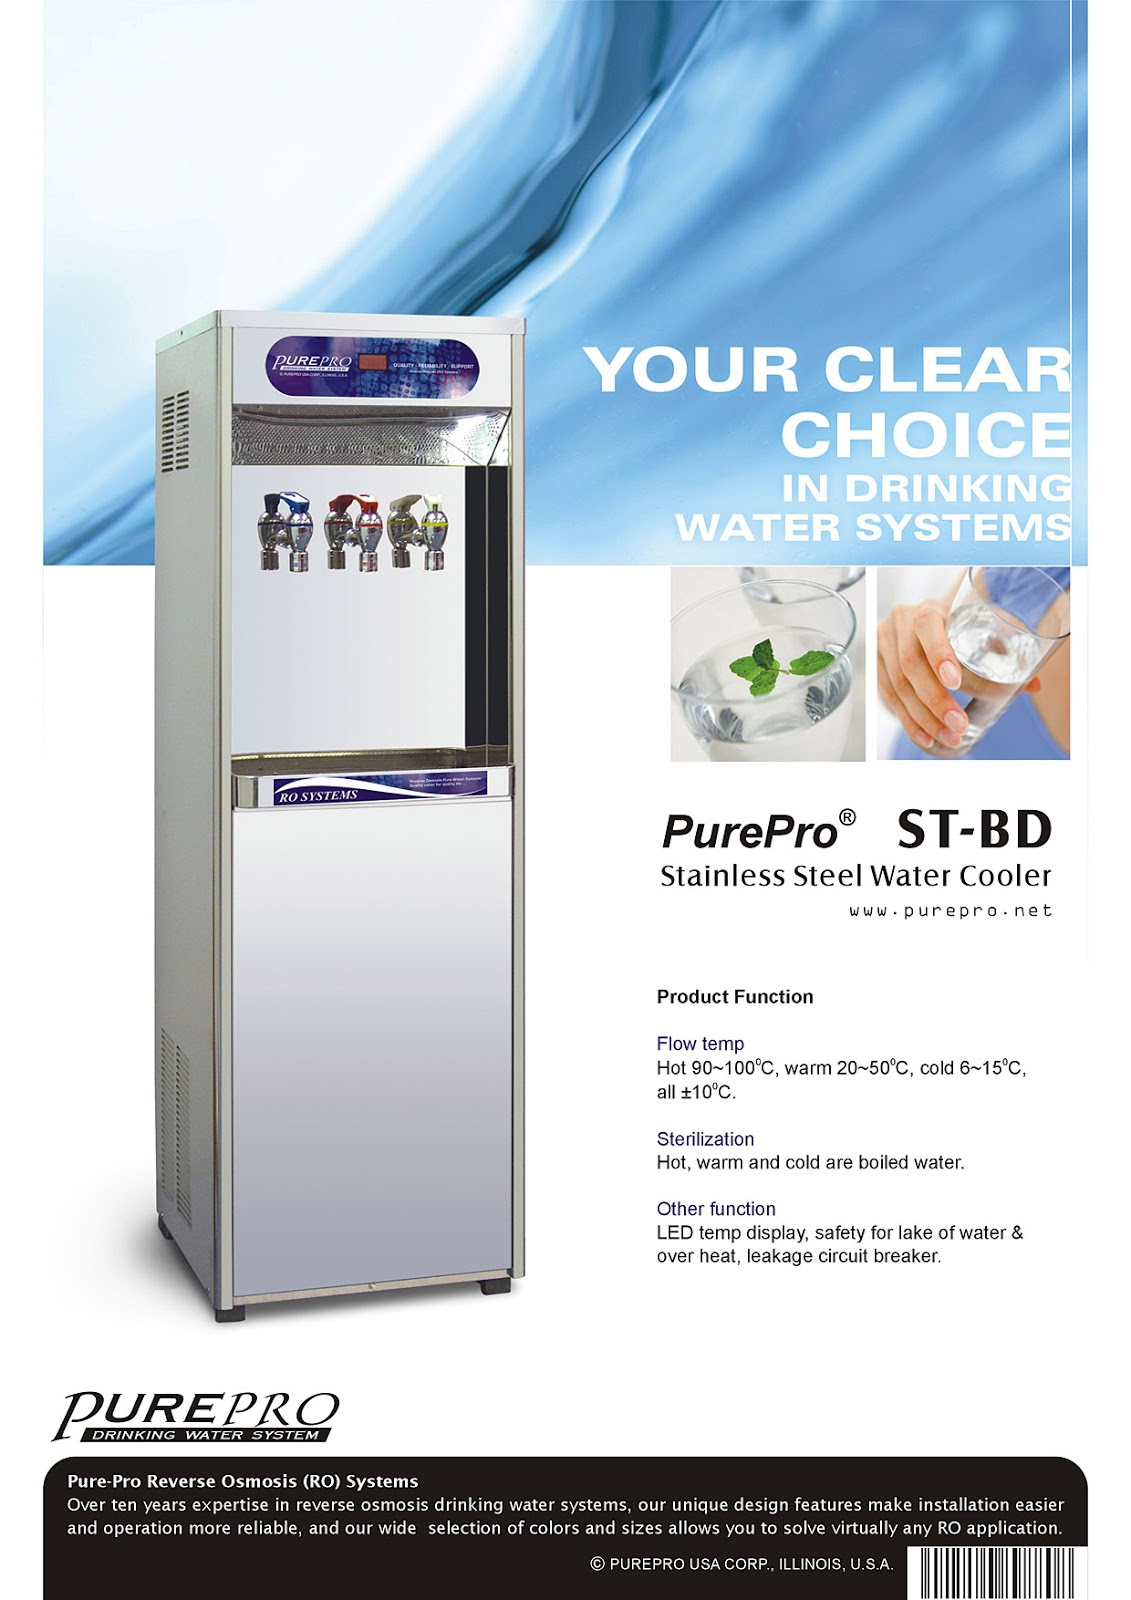 PurePro® ST-BD Reverse Osmosis Water Filtration System